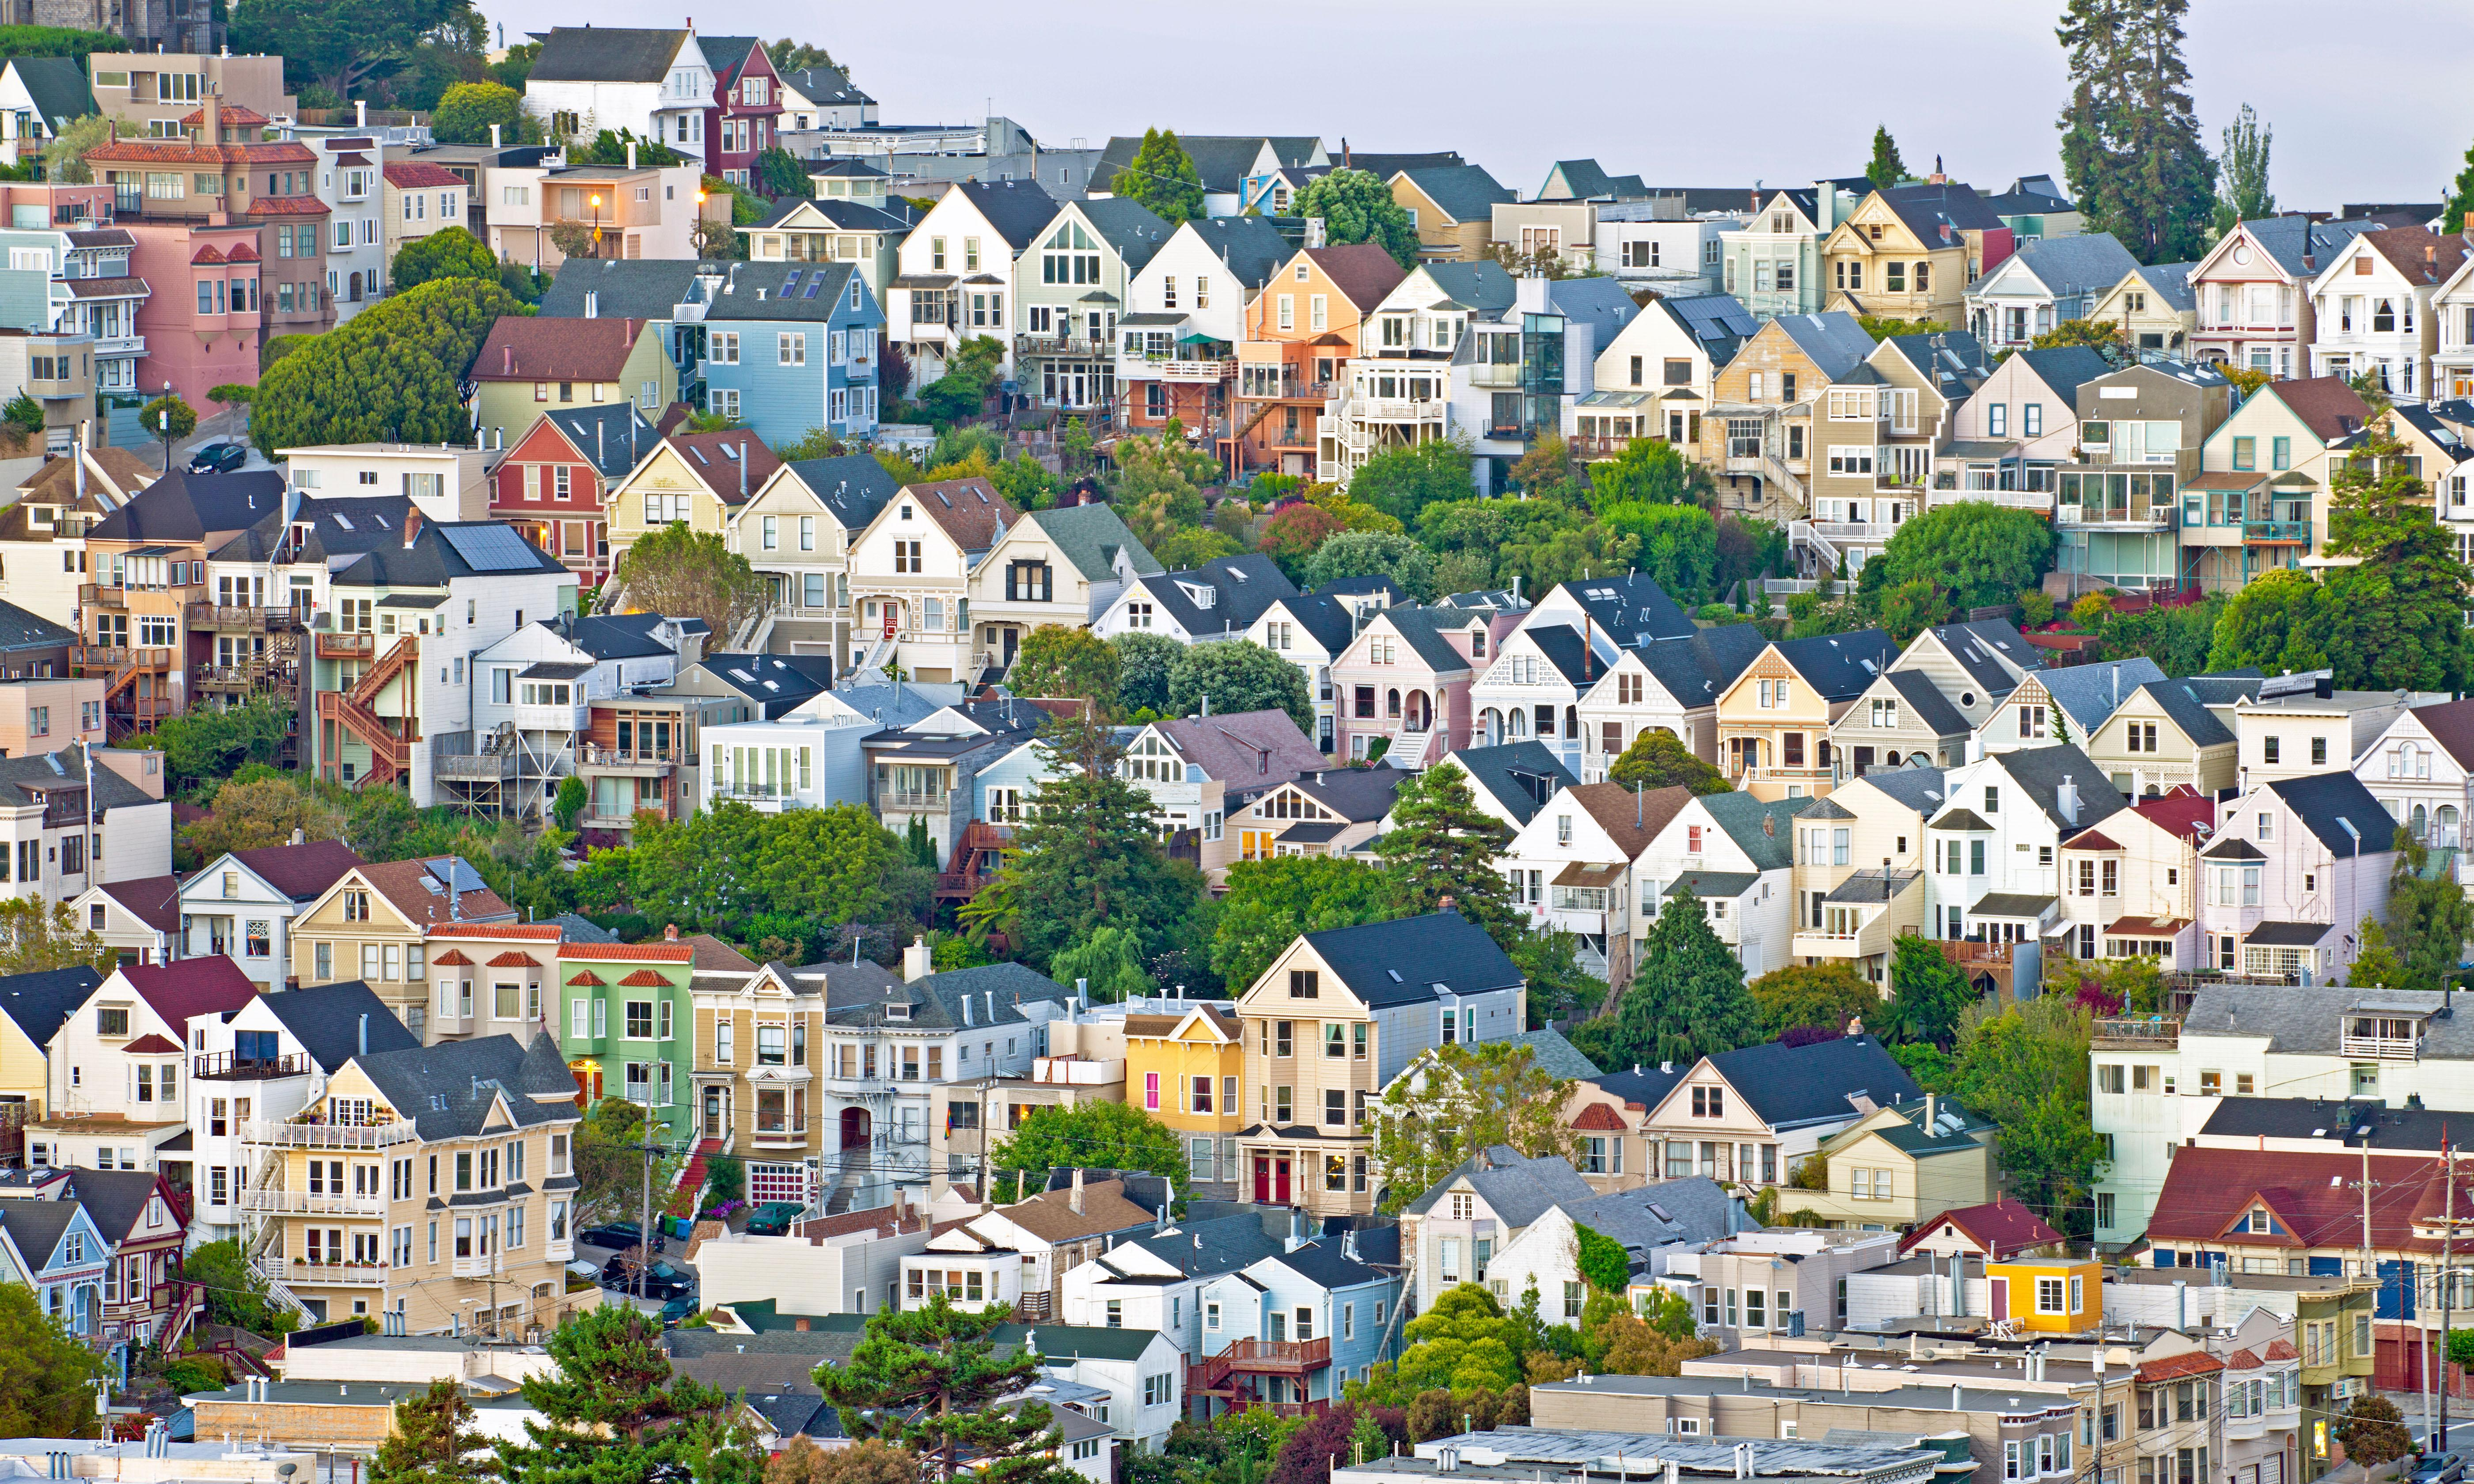 House-hunting in Silicon Valley: tech's newly rich fuel a spectacle of excess